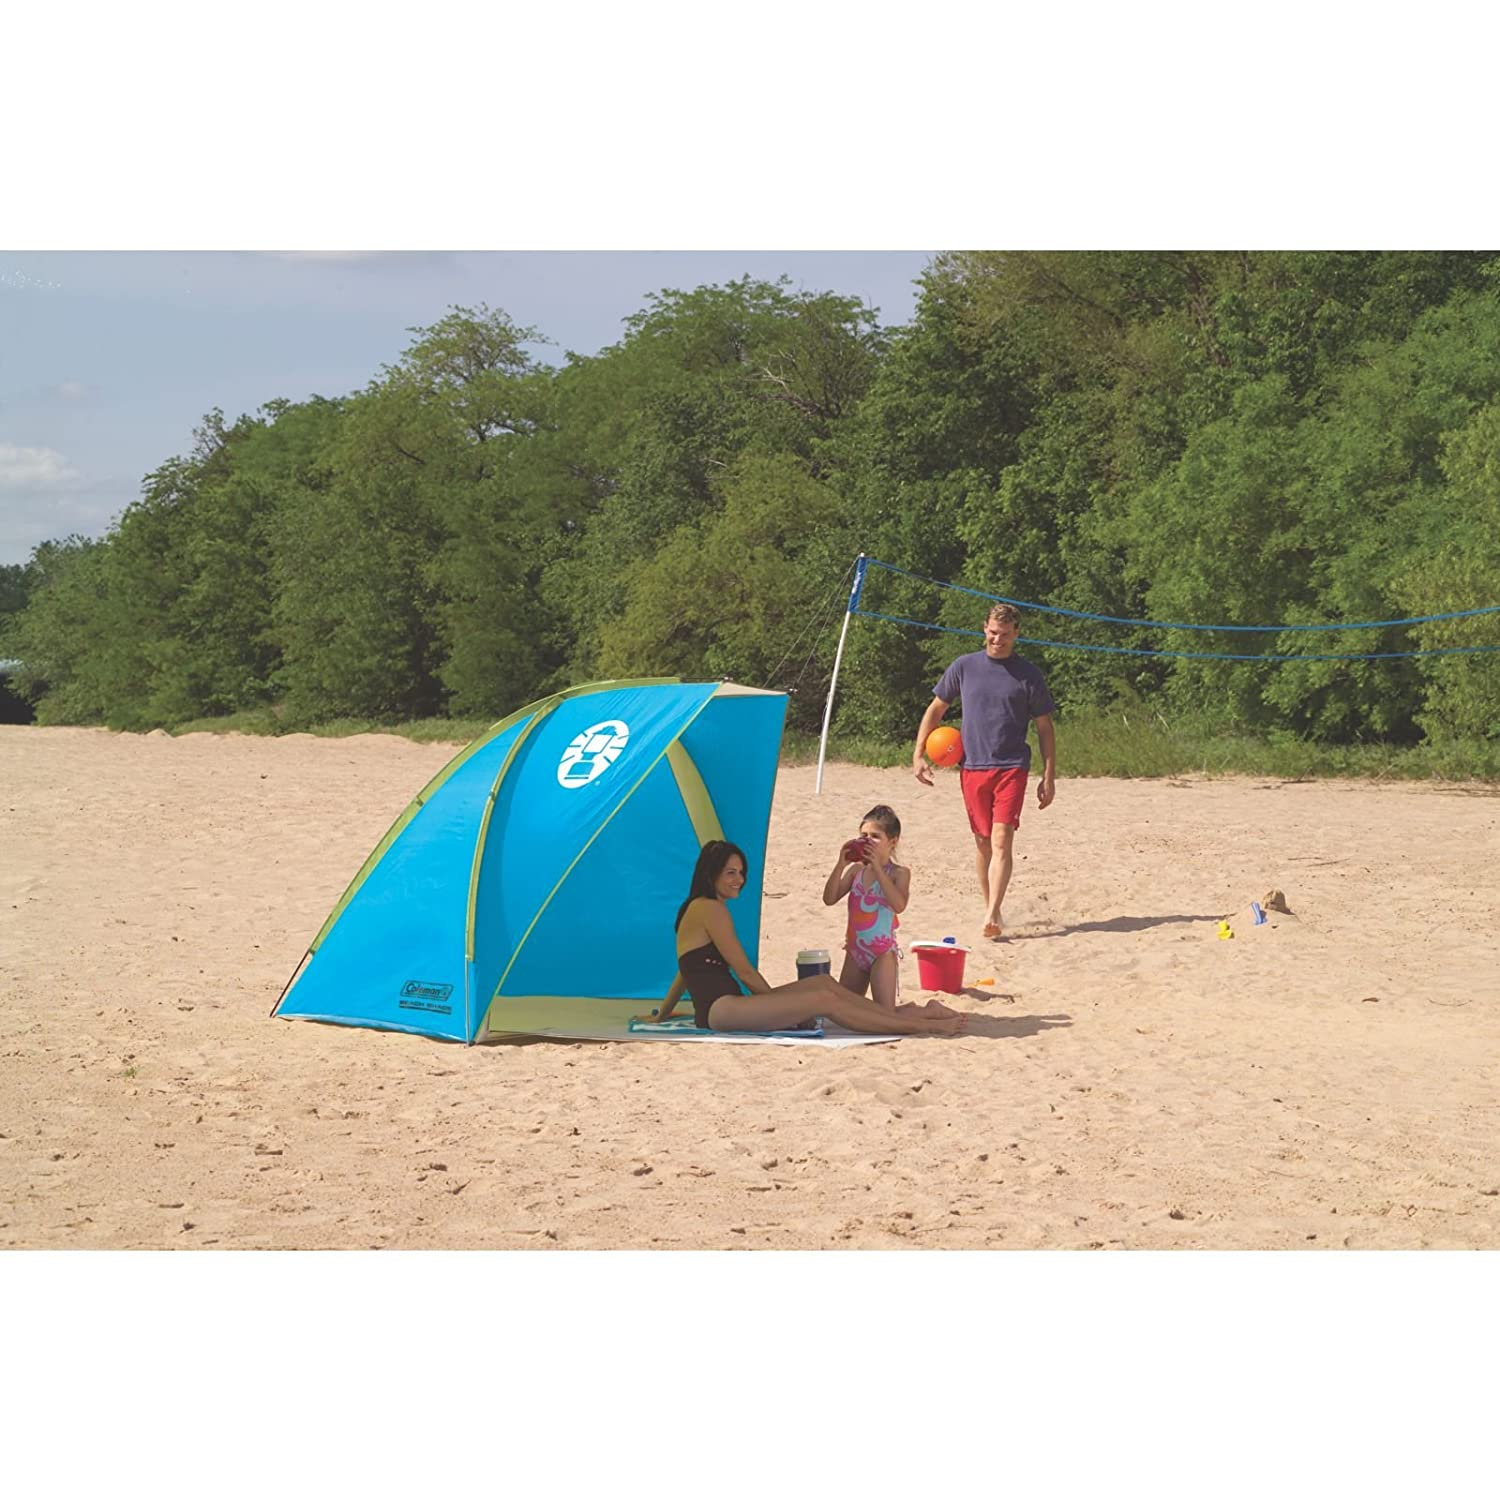 Amazon.com  Coleman Compact Shade Shelter Blue/Lime  Sports u0026 Outdoors  sc 1 st  Amazon.com : beach tent umbrella - memphite.com